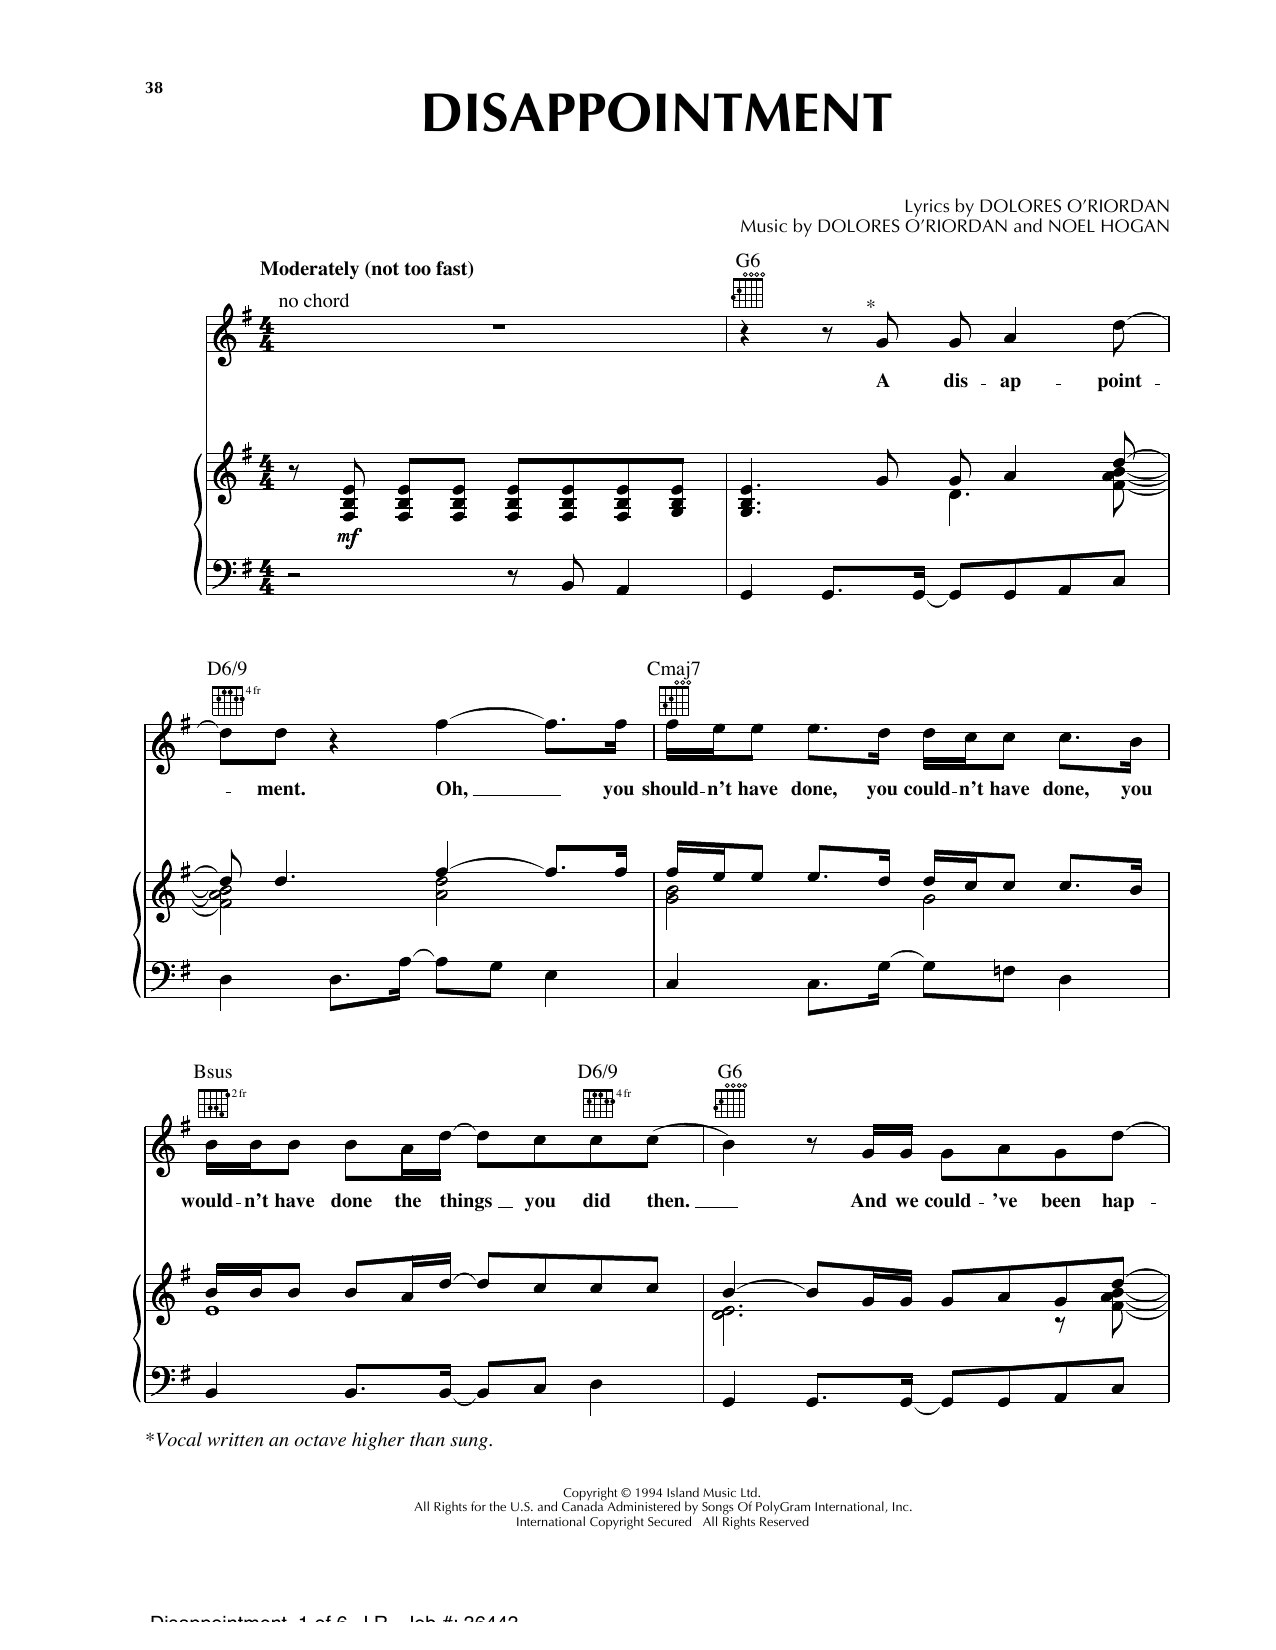 Disappointment Sheet Music